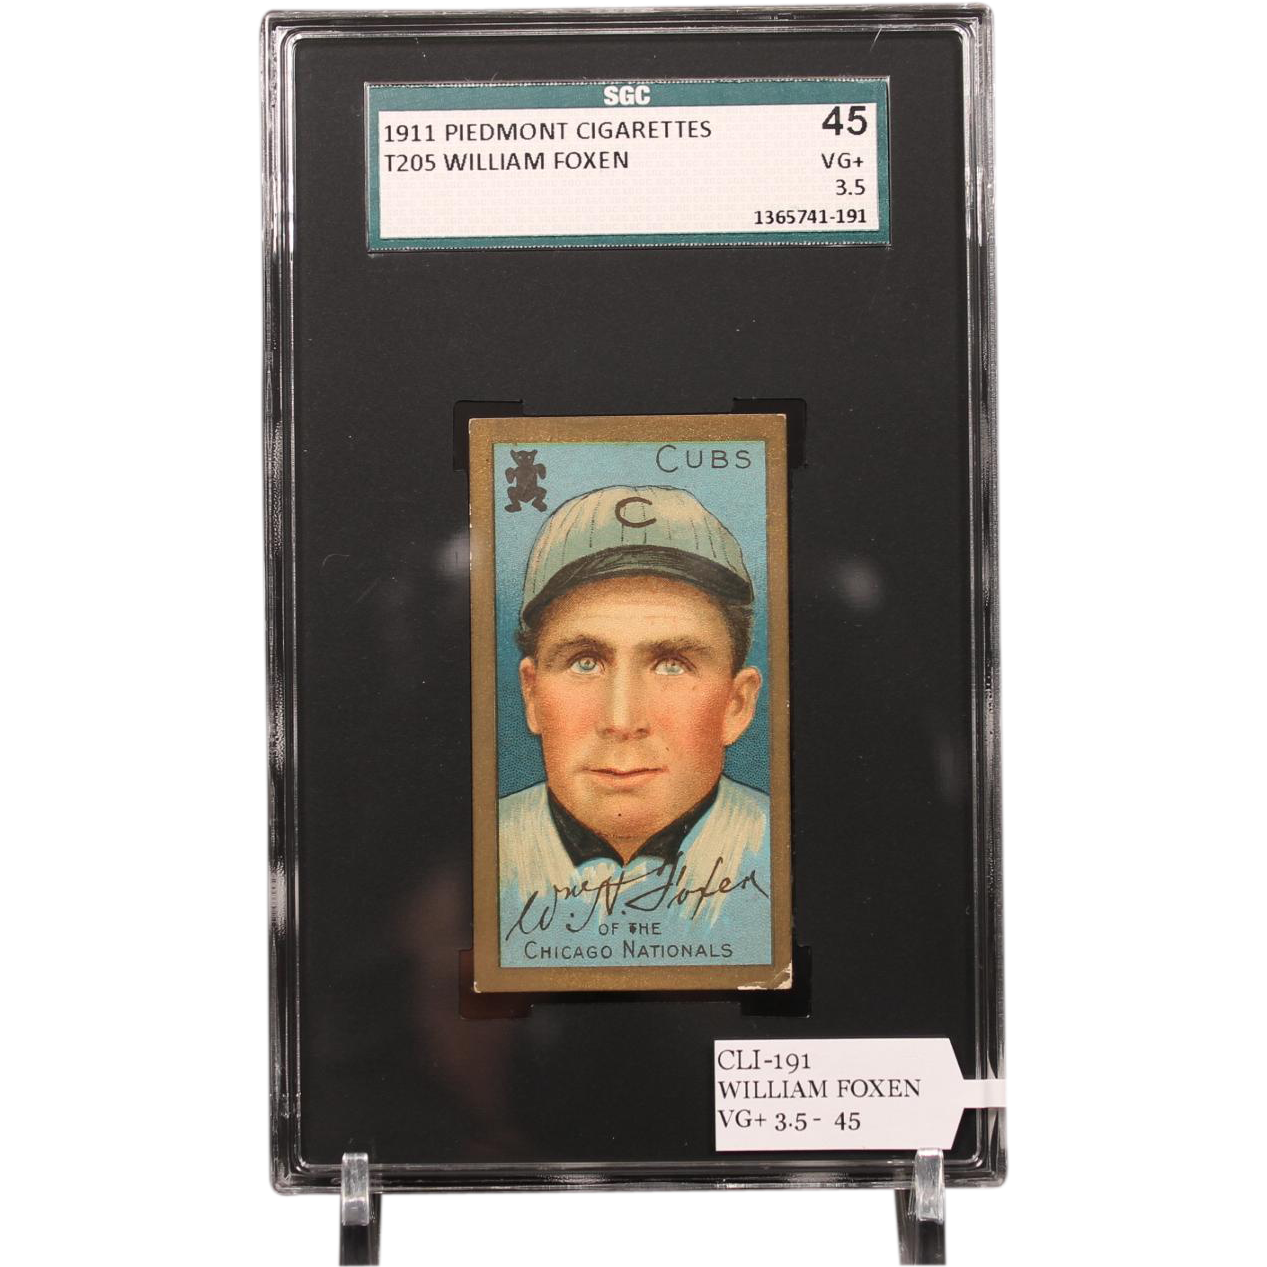 T205 WILLIAM FOXEN SGC grade 45 VG+ 3.5